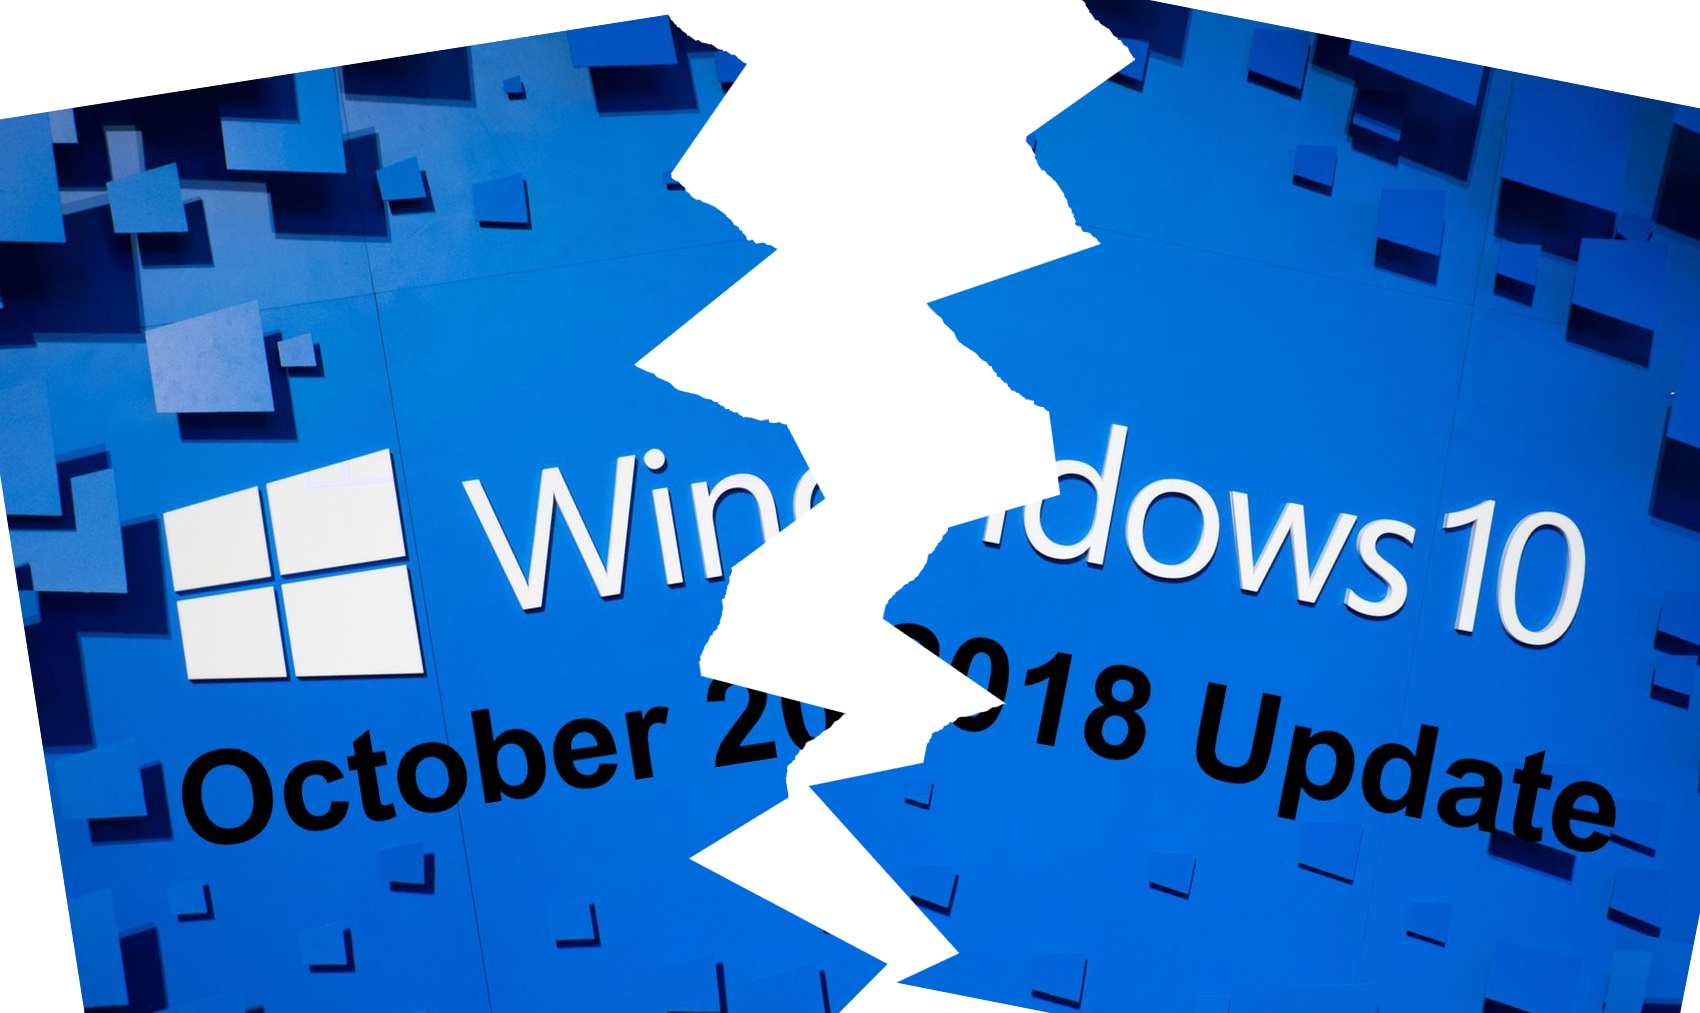 Microsoft blocks Windows 10 v1809 Upgrade on some Intel PCs